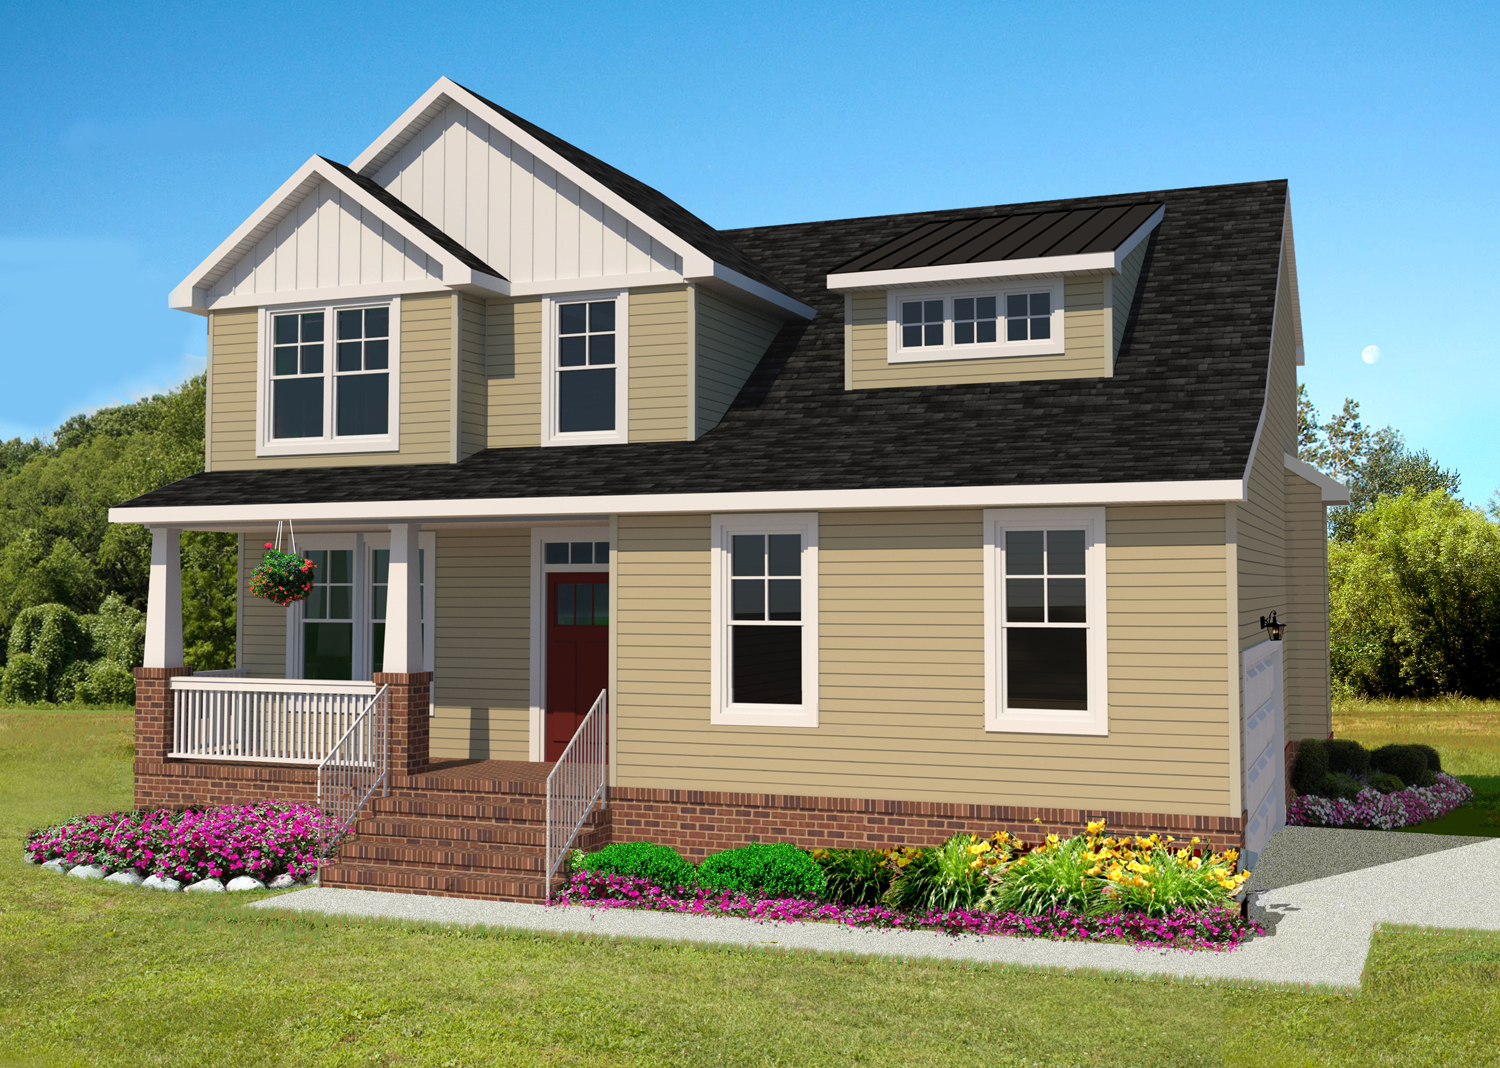 The Holland floor plan by AB Homes featuring two stories with tan siding and white trim with flowers